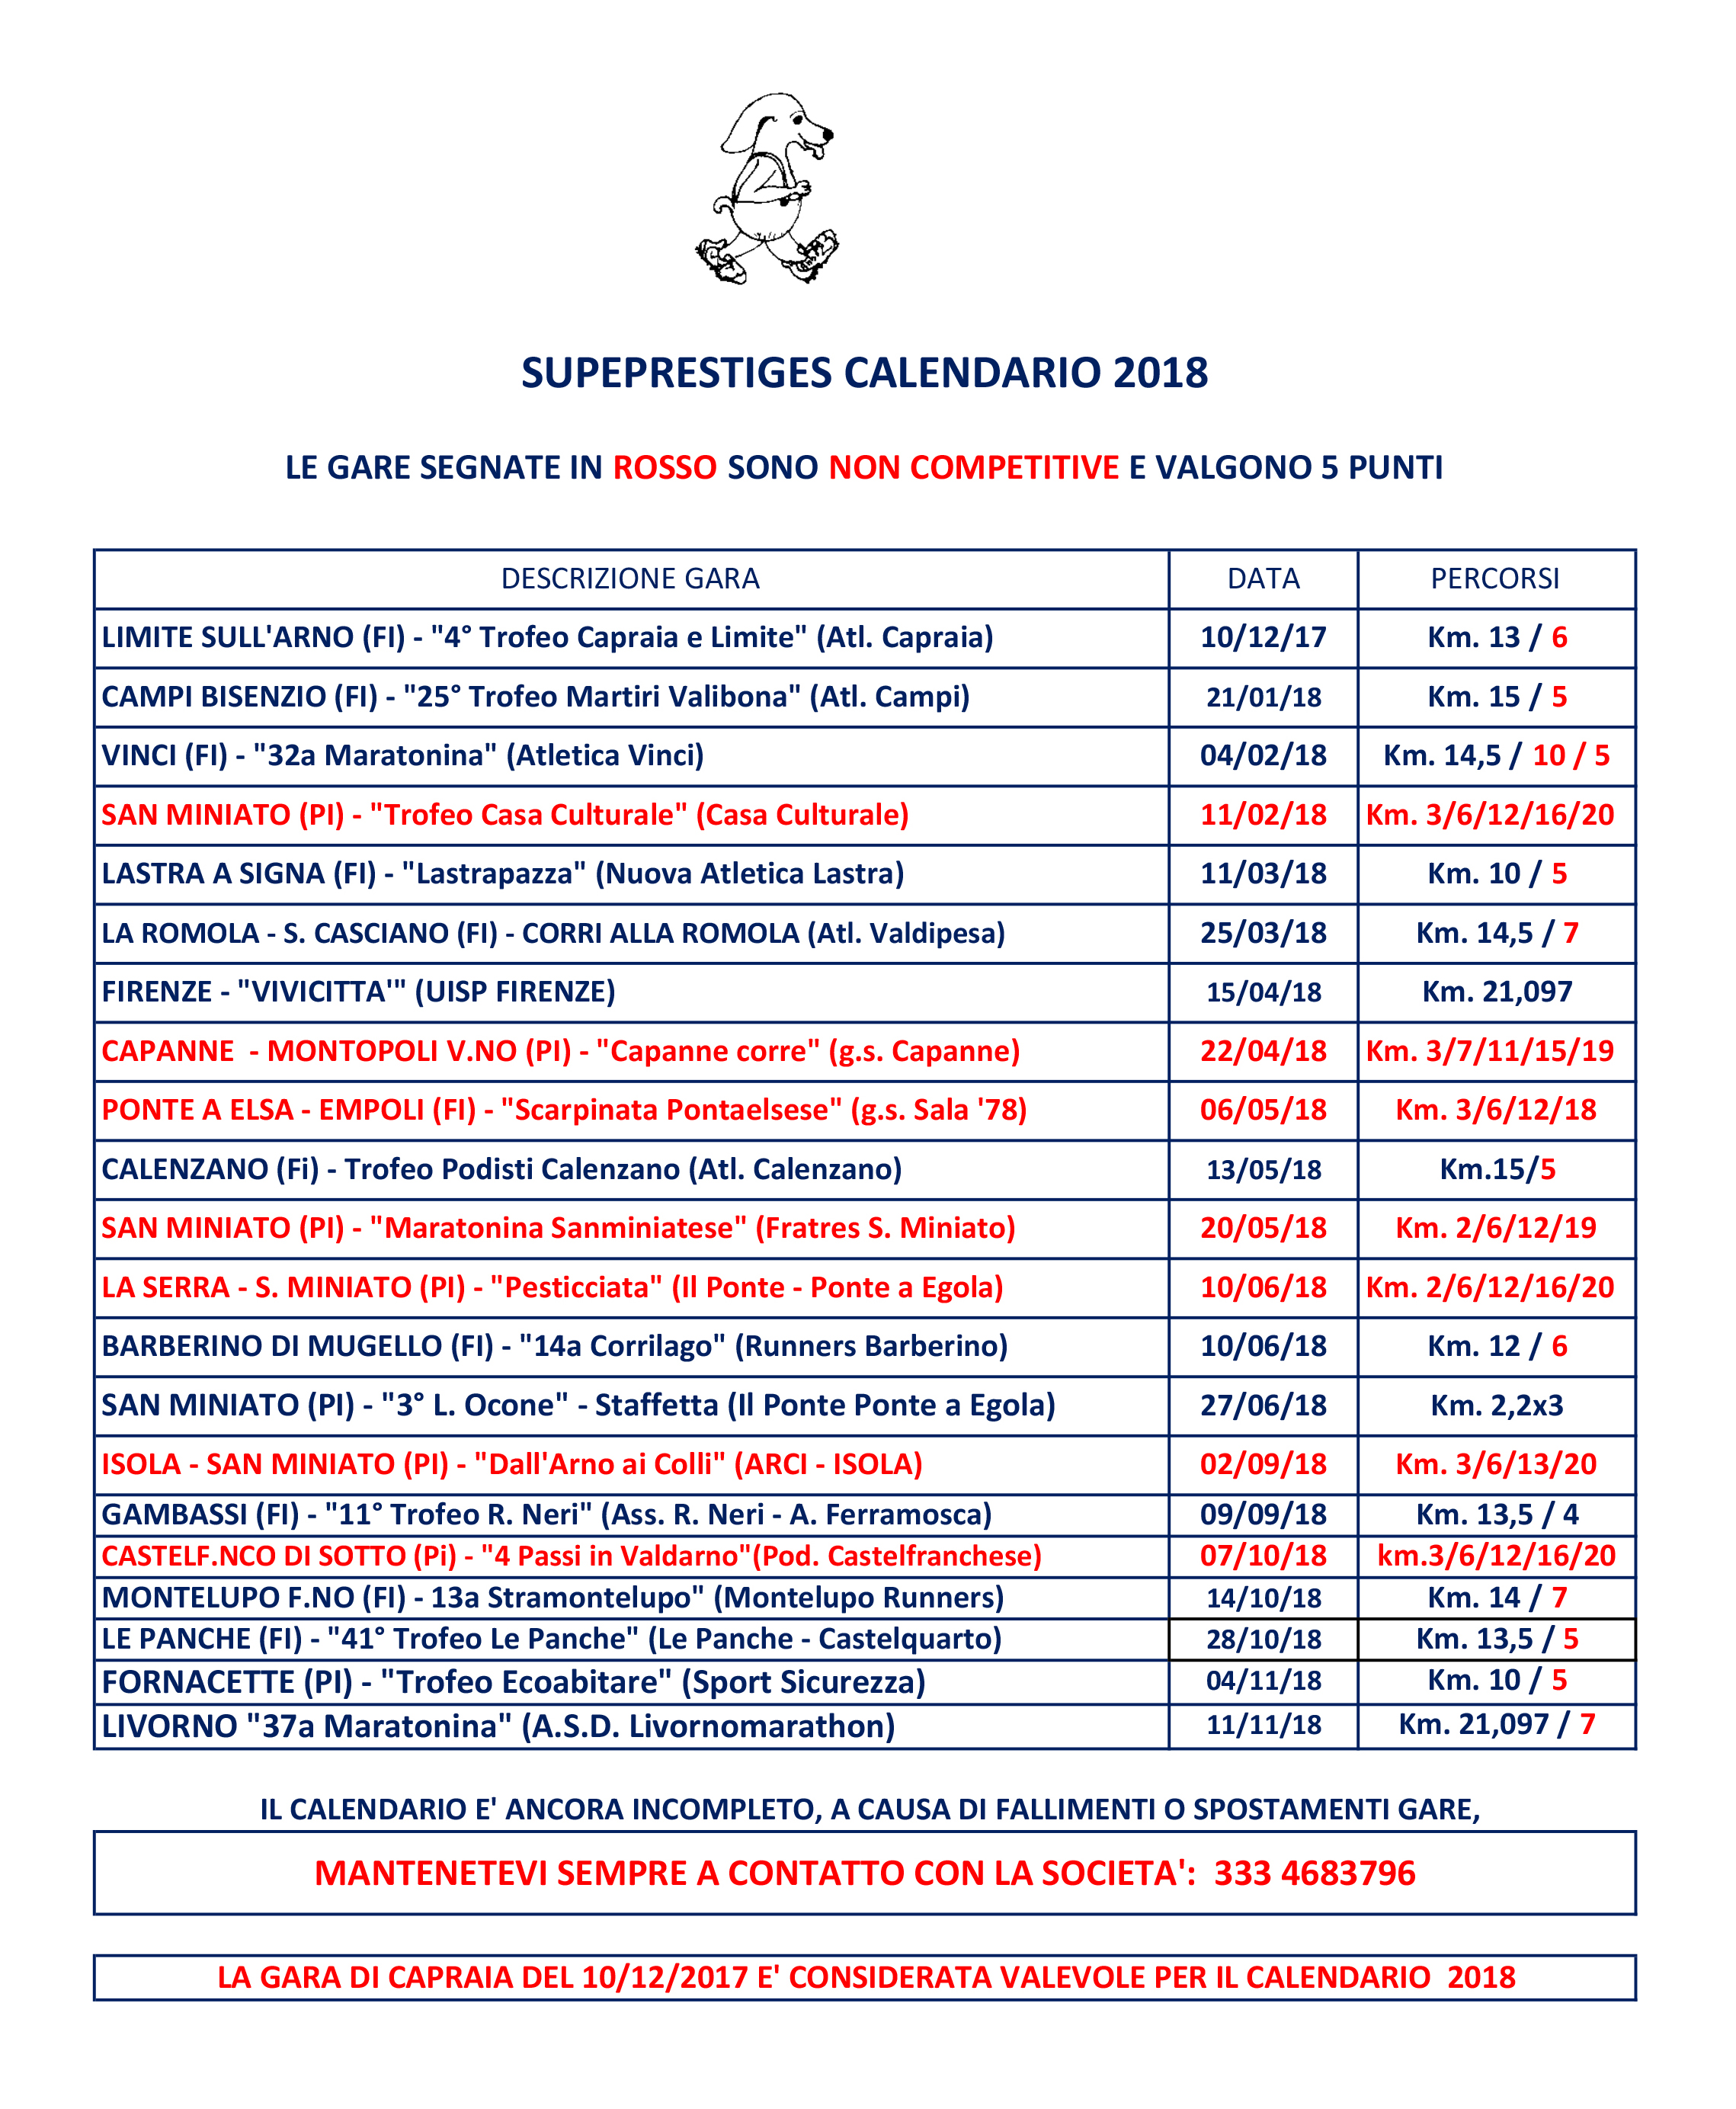 A-SUPERPRESTIGES calendario 2018.xlsx